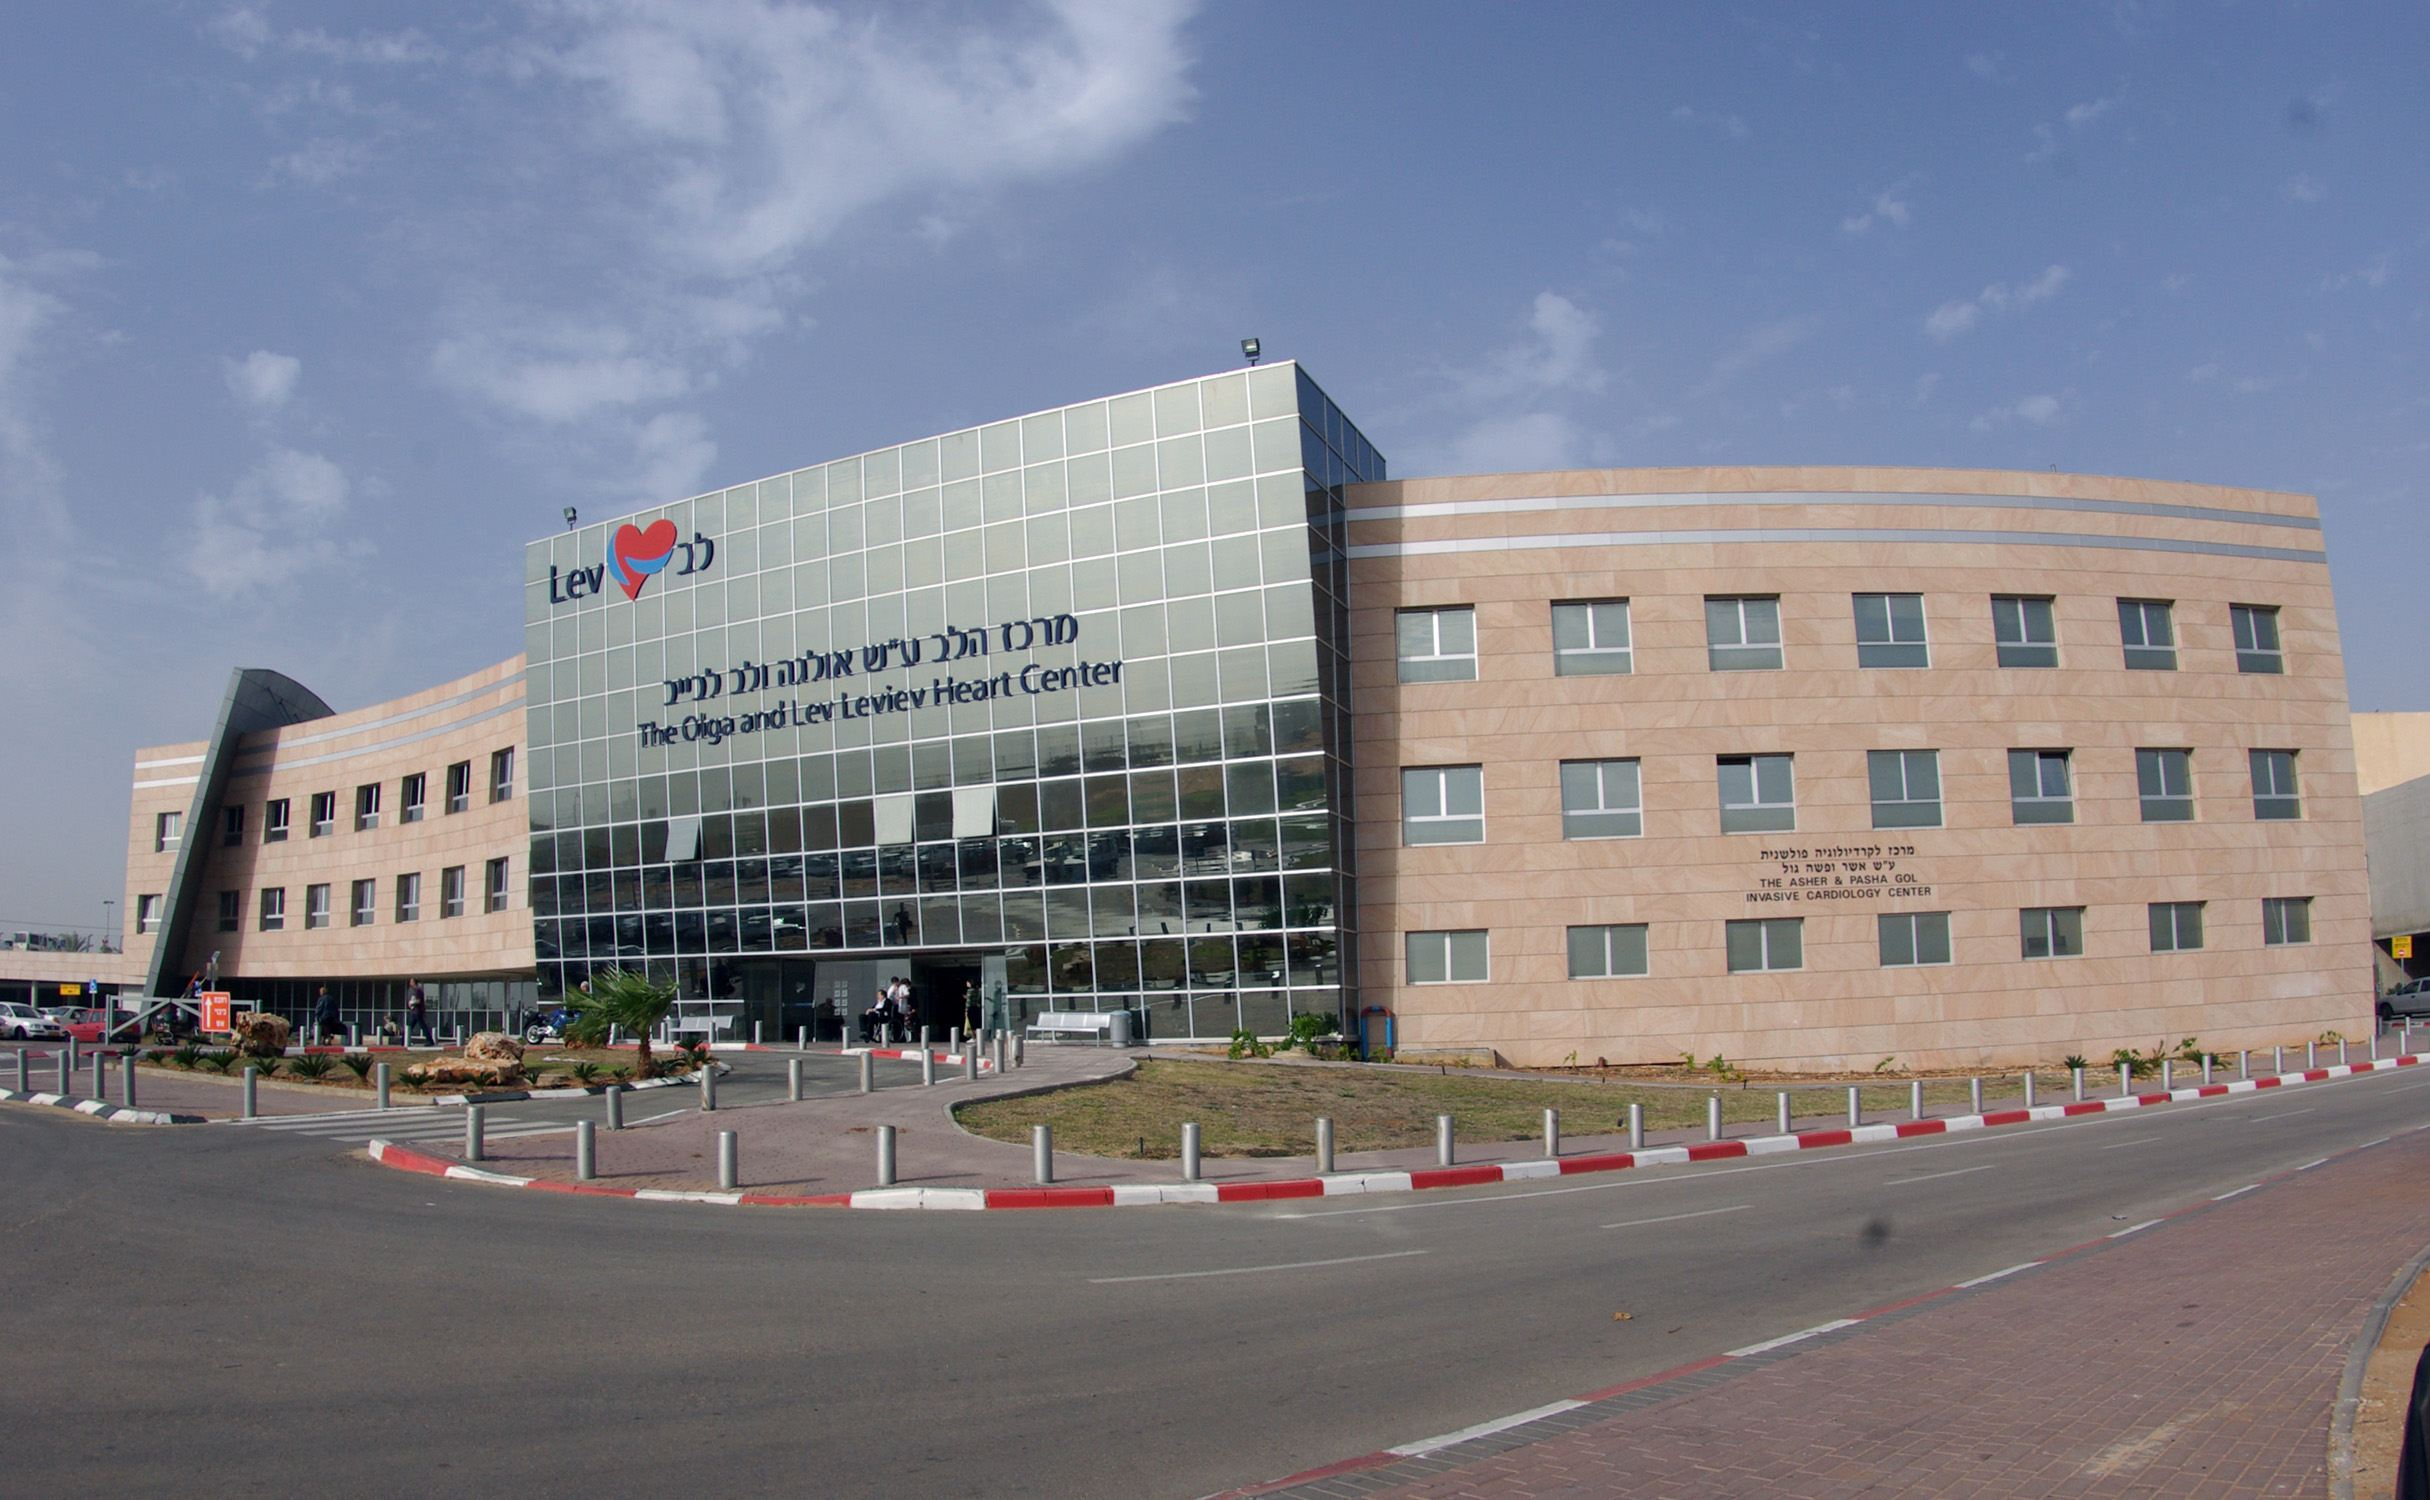 """Sheba Medical Center to Create The First Fully VR-Based Hospital In The World Sheba Medical Center Declares Israel's """"City of Health"""", Inks $350M Deal"""